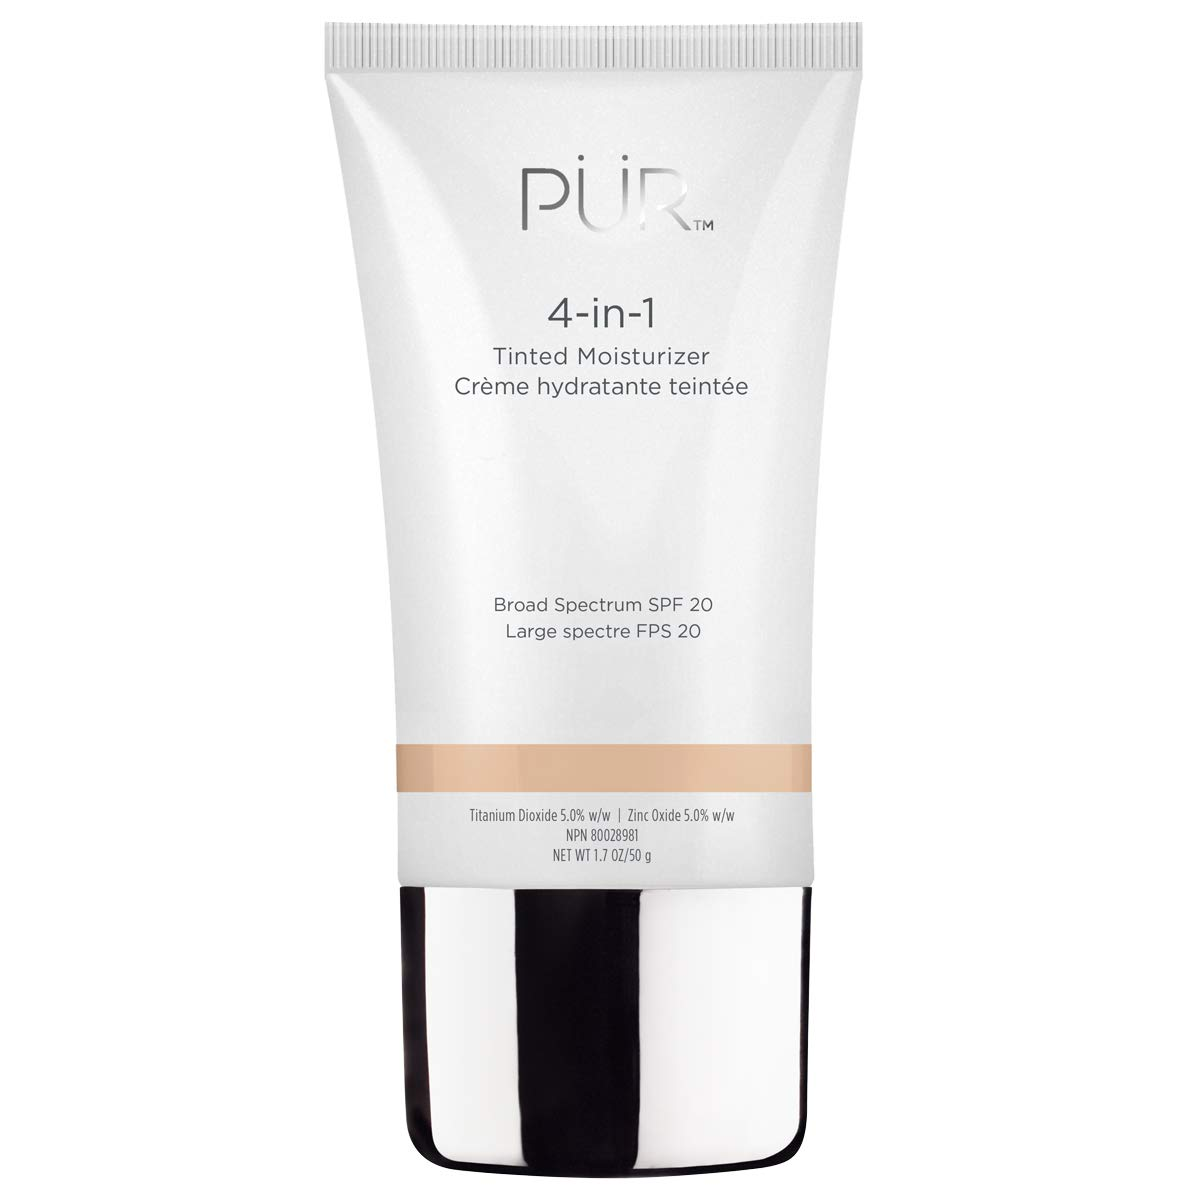 PUR Cosmetics 4-in-1 Tinted Moisturizer in Fairy Ivory, 1.7 oz